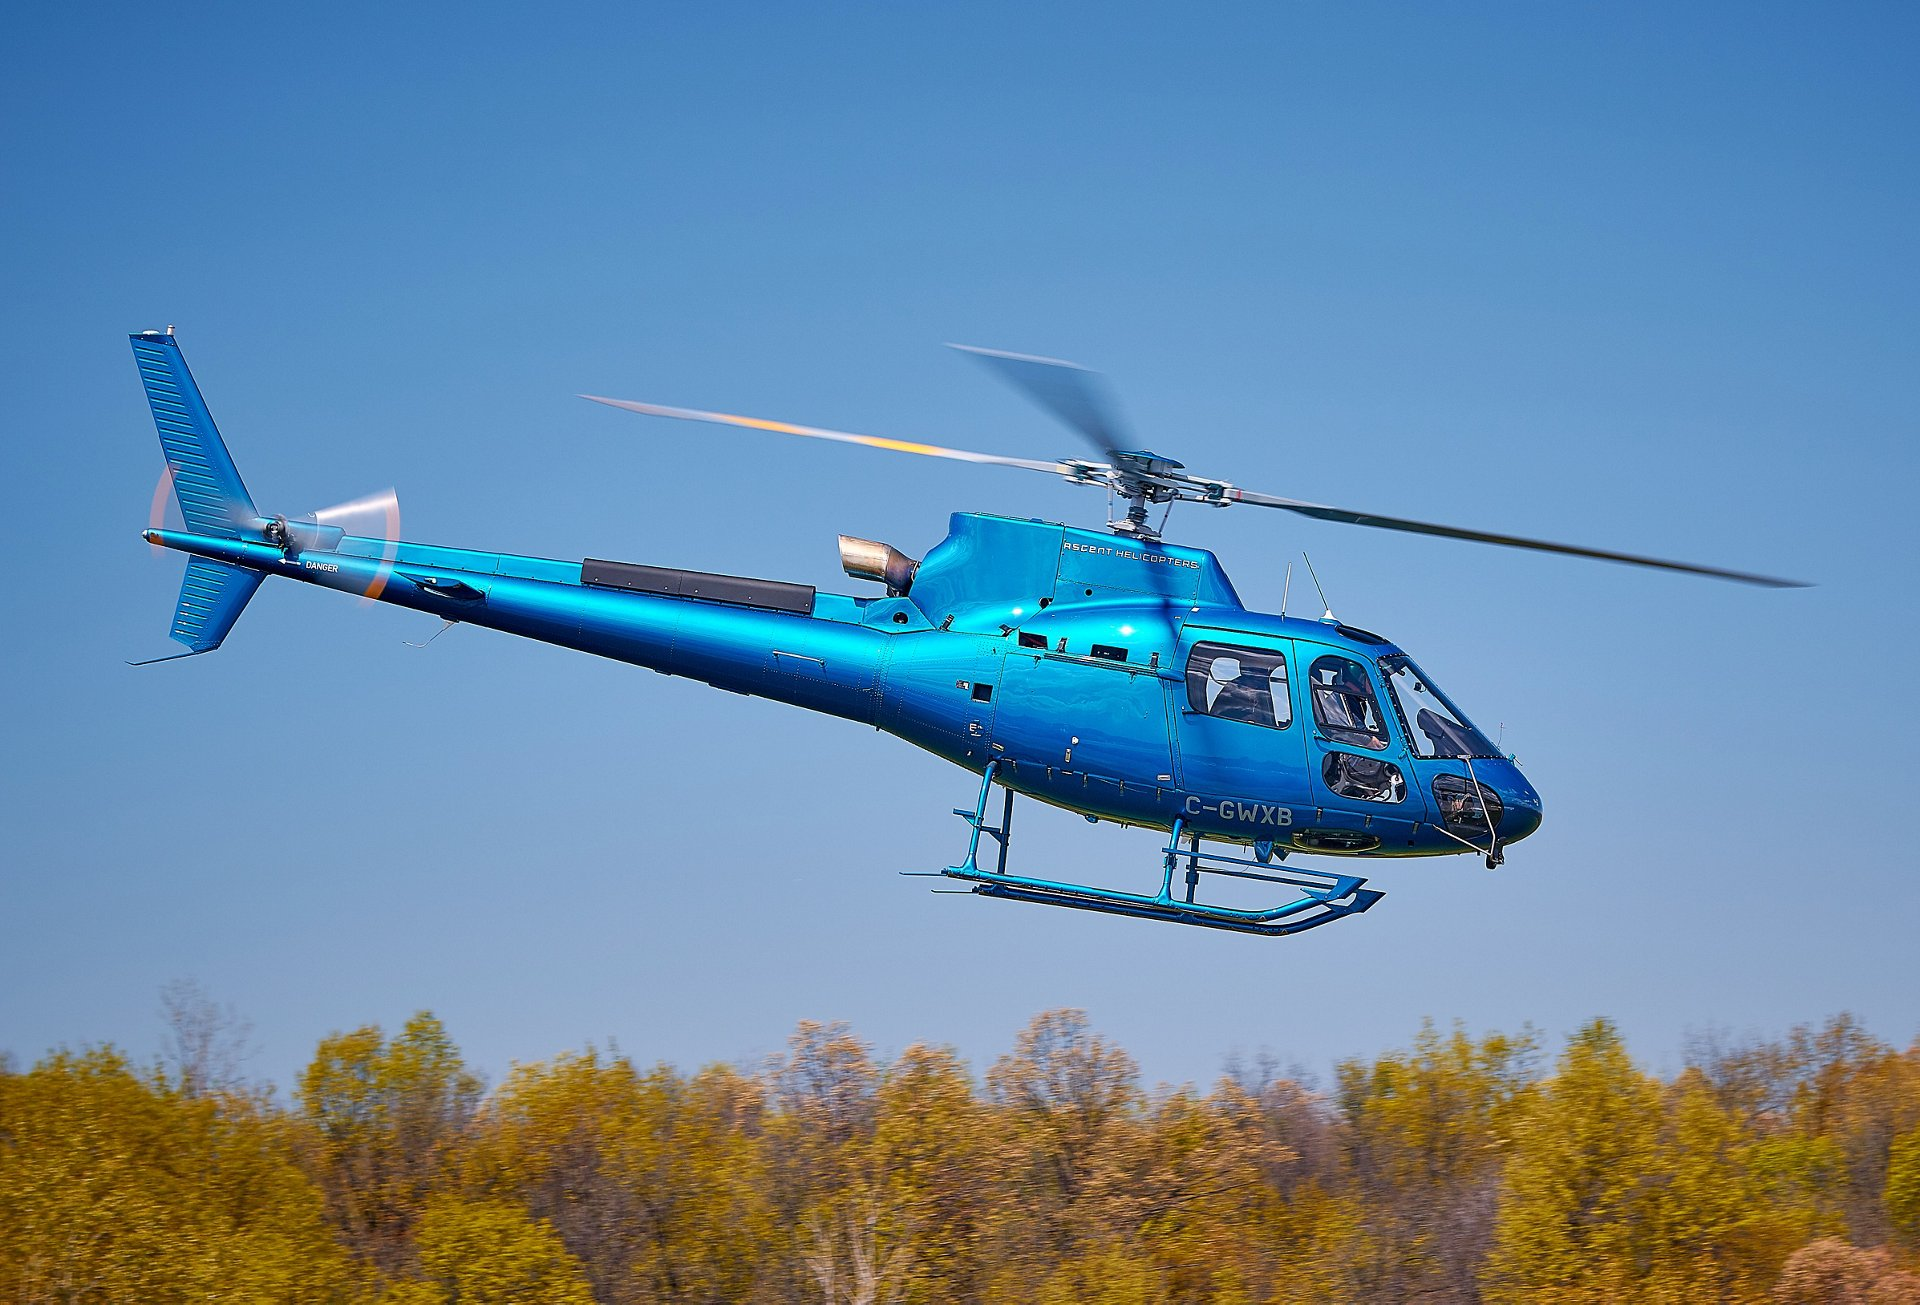 Ascent Helicopters will use the single-engine aircraft in support of power line work and firefighting missions across Canada and the U.S. with its American partner, Heli-1 Corporation